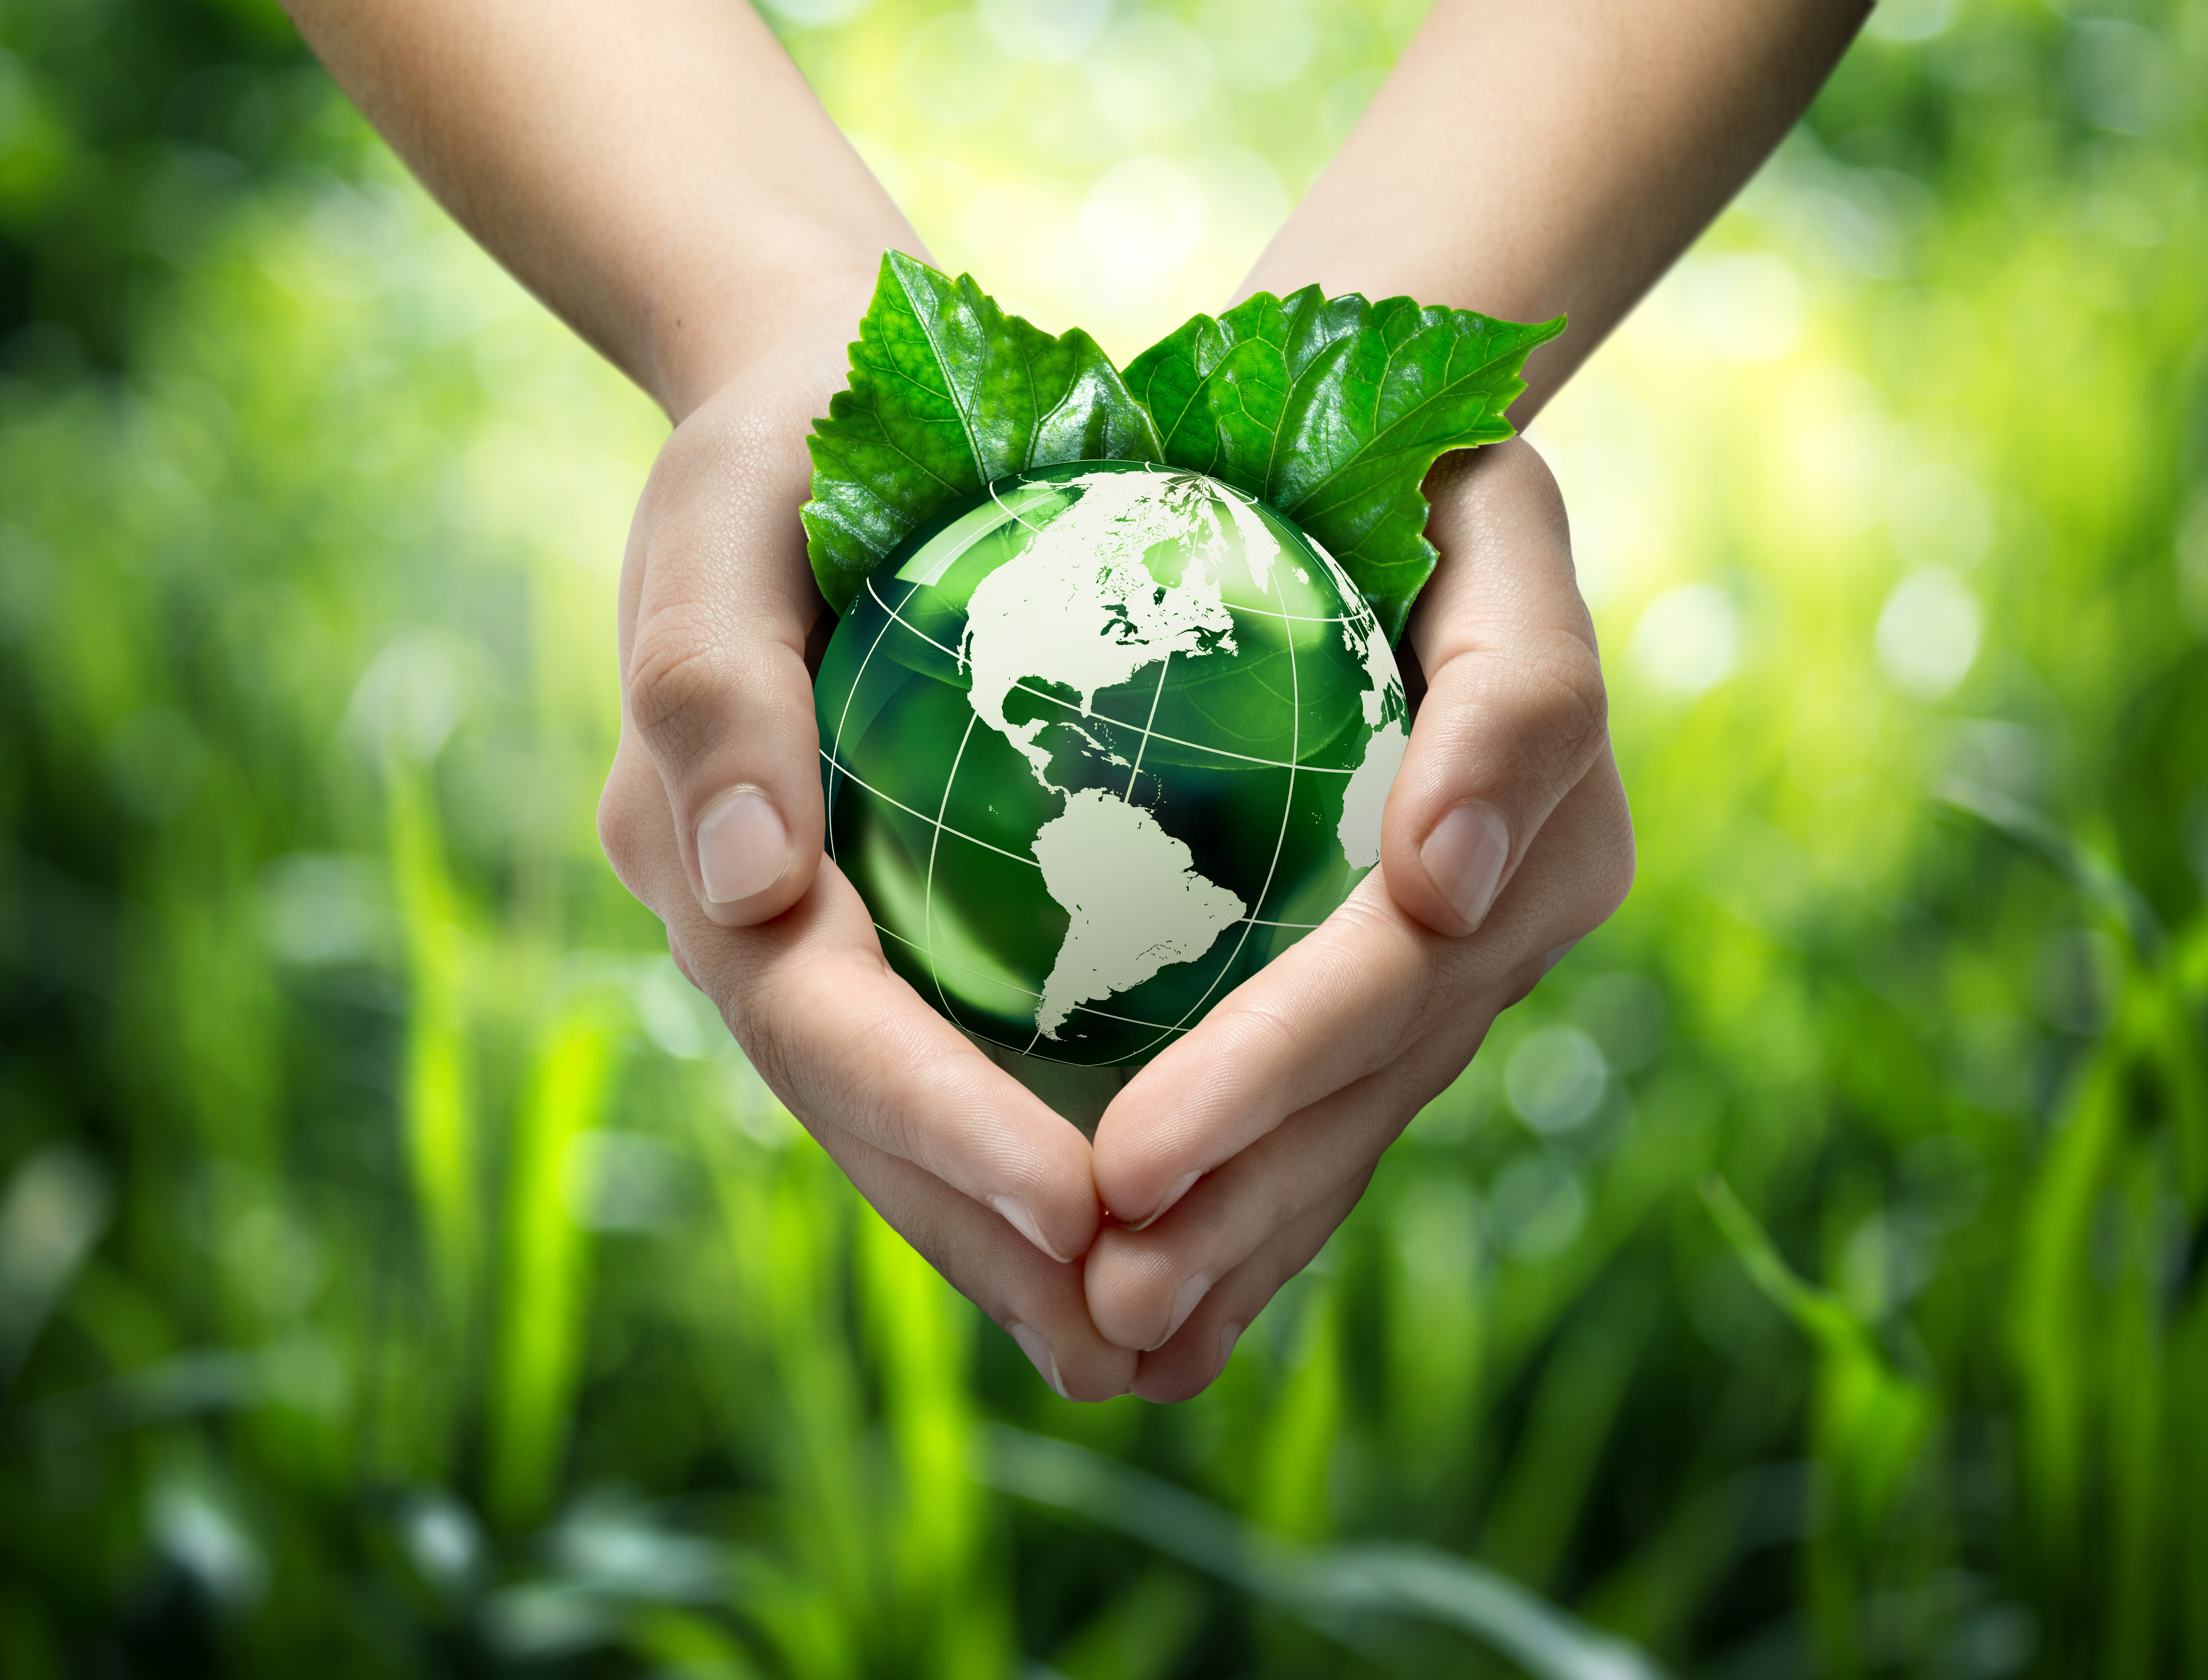 Sustainability image with planet earth in hands